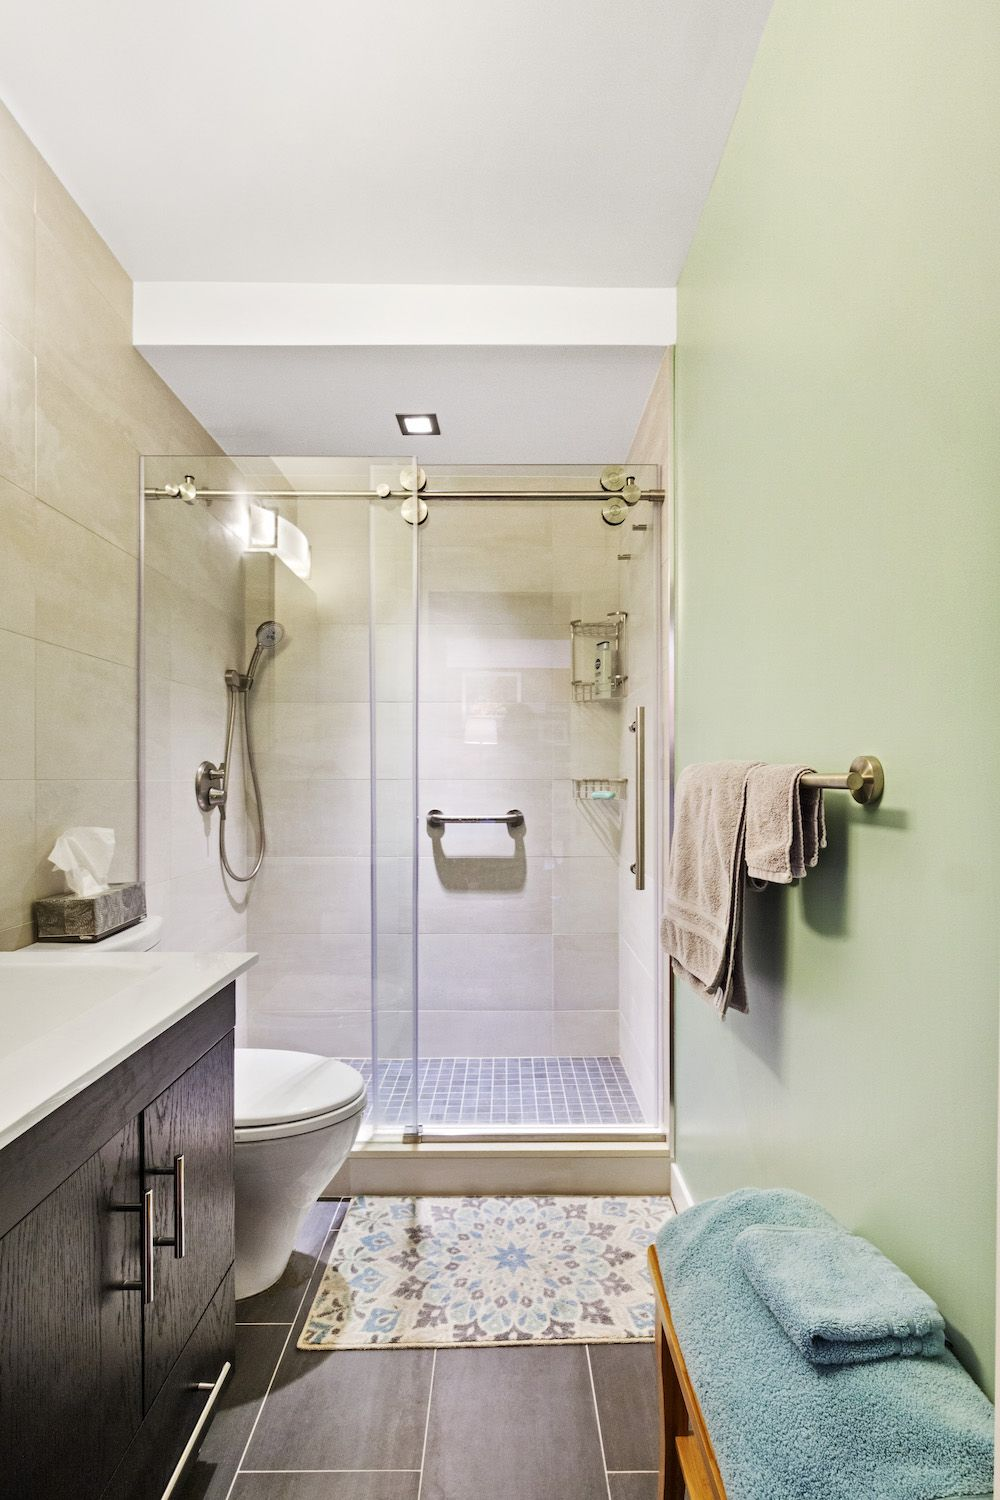 A Small Windowless Bathroom Expands After Renovating With Sweeten Windowless Bathroom Bathrooms Remodel Bathroom Design Tool